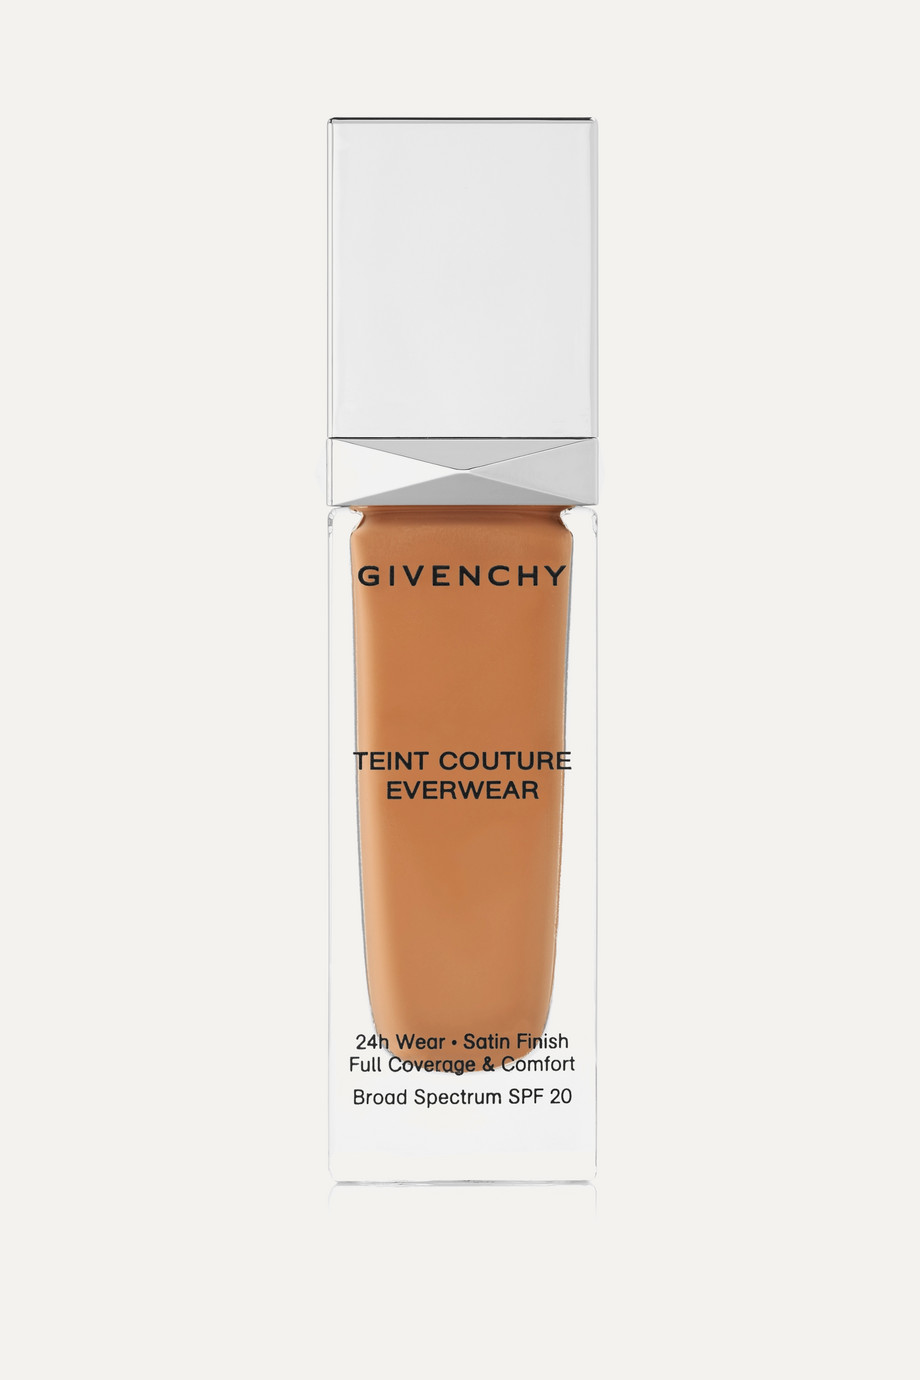 Givenchy Beauty Teint Couture Everwear Foundation SPF20 - Y310, 30ml